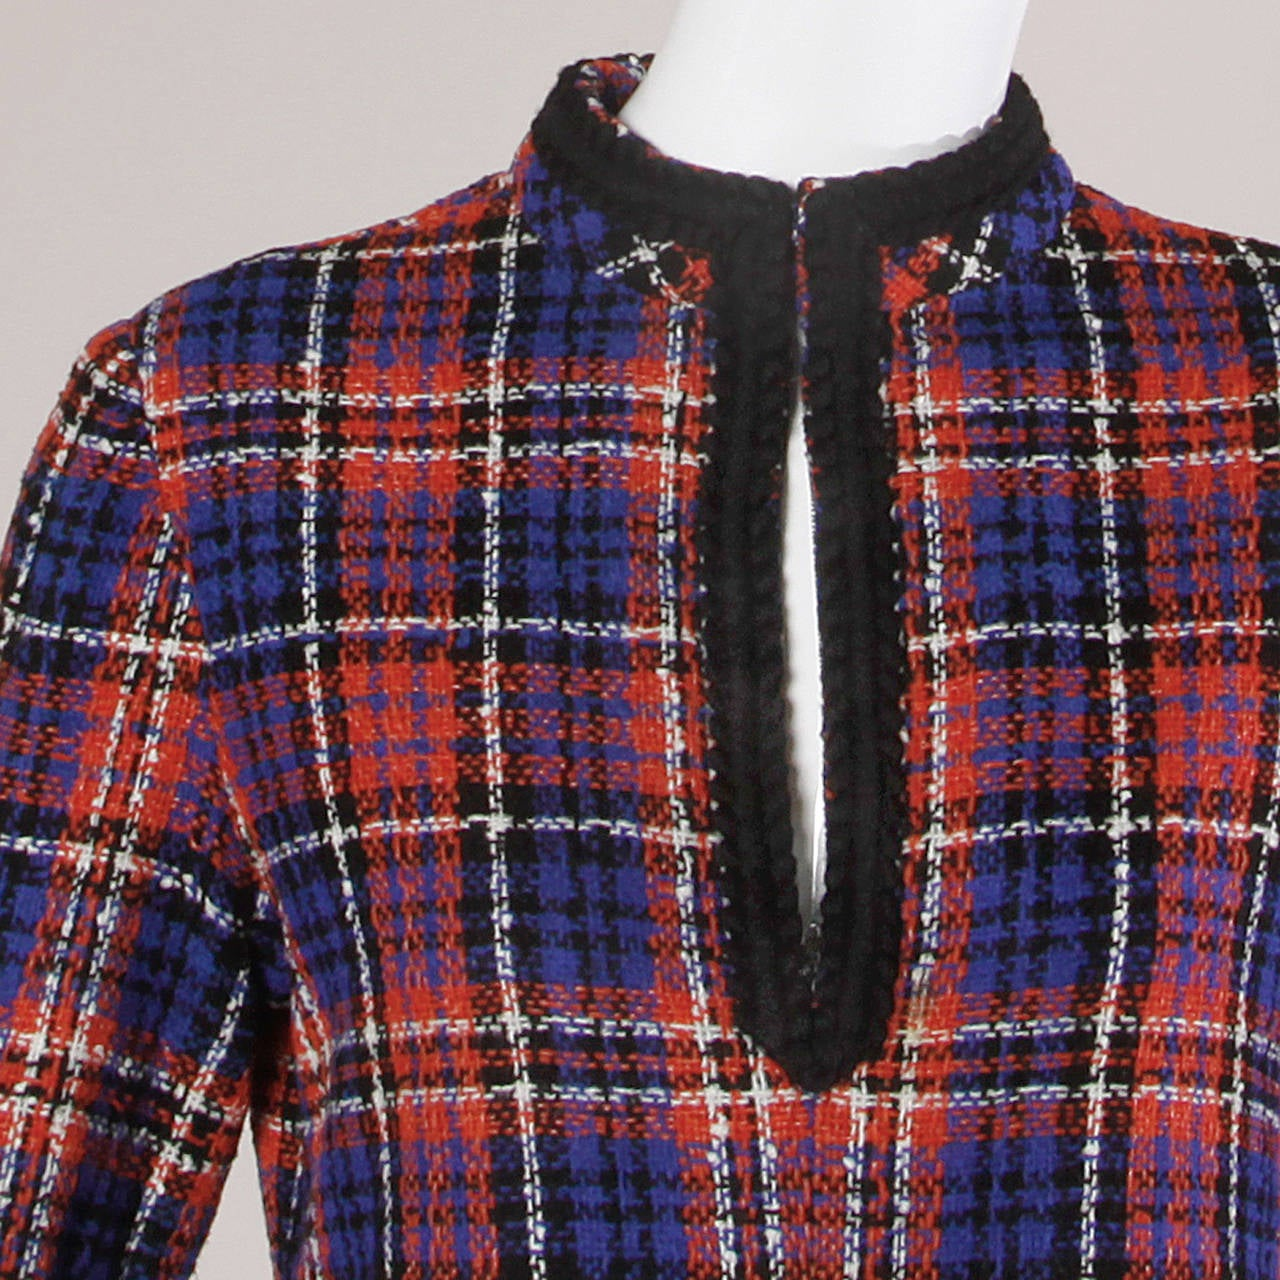 Oscar de la Renta Vintage 1960s Plaid Dress 3